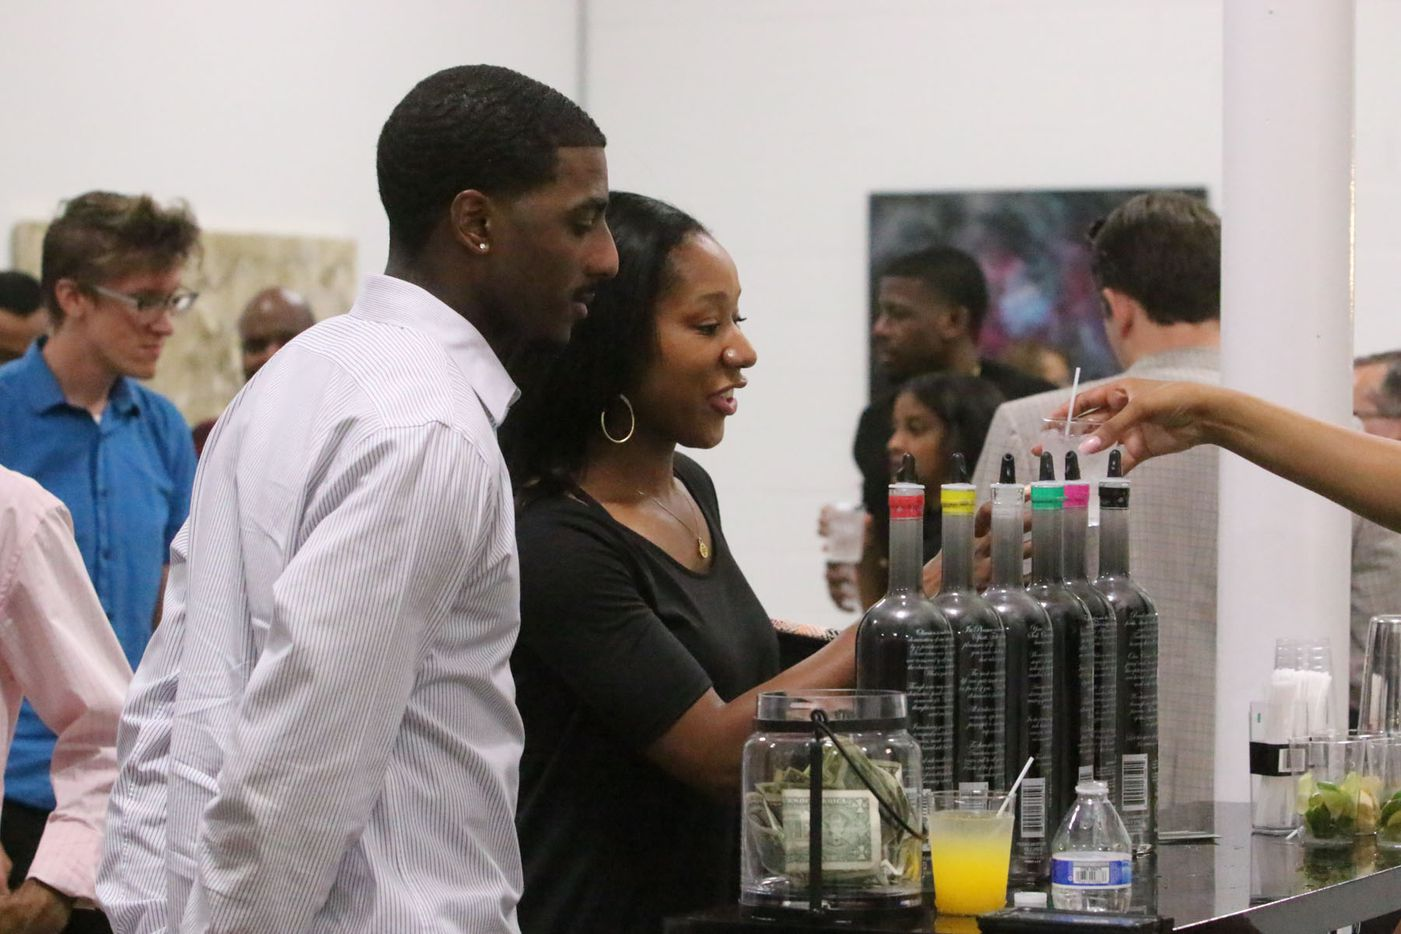 Random Art Gallery hosted the opening reception of visual artist Tori Martin's Euphoria art exhibit.